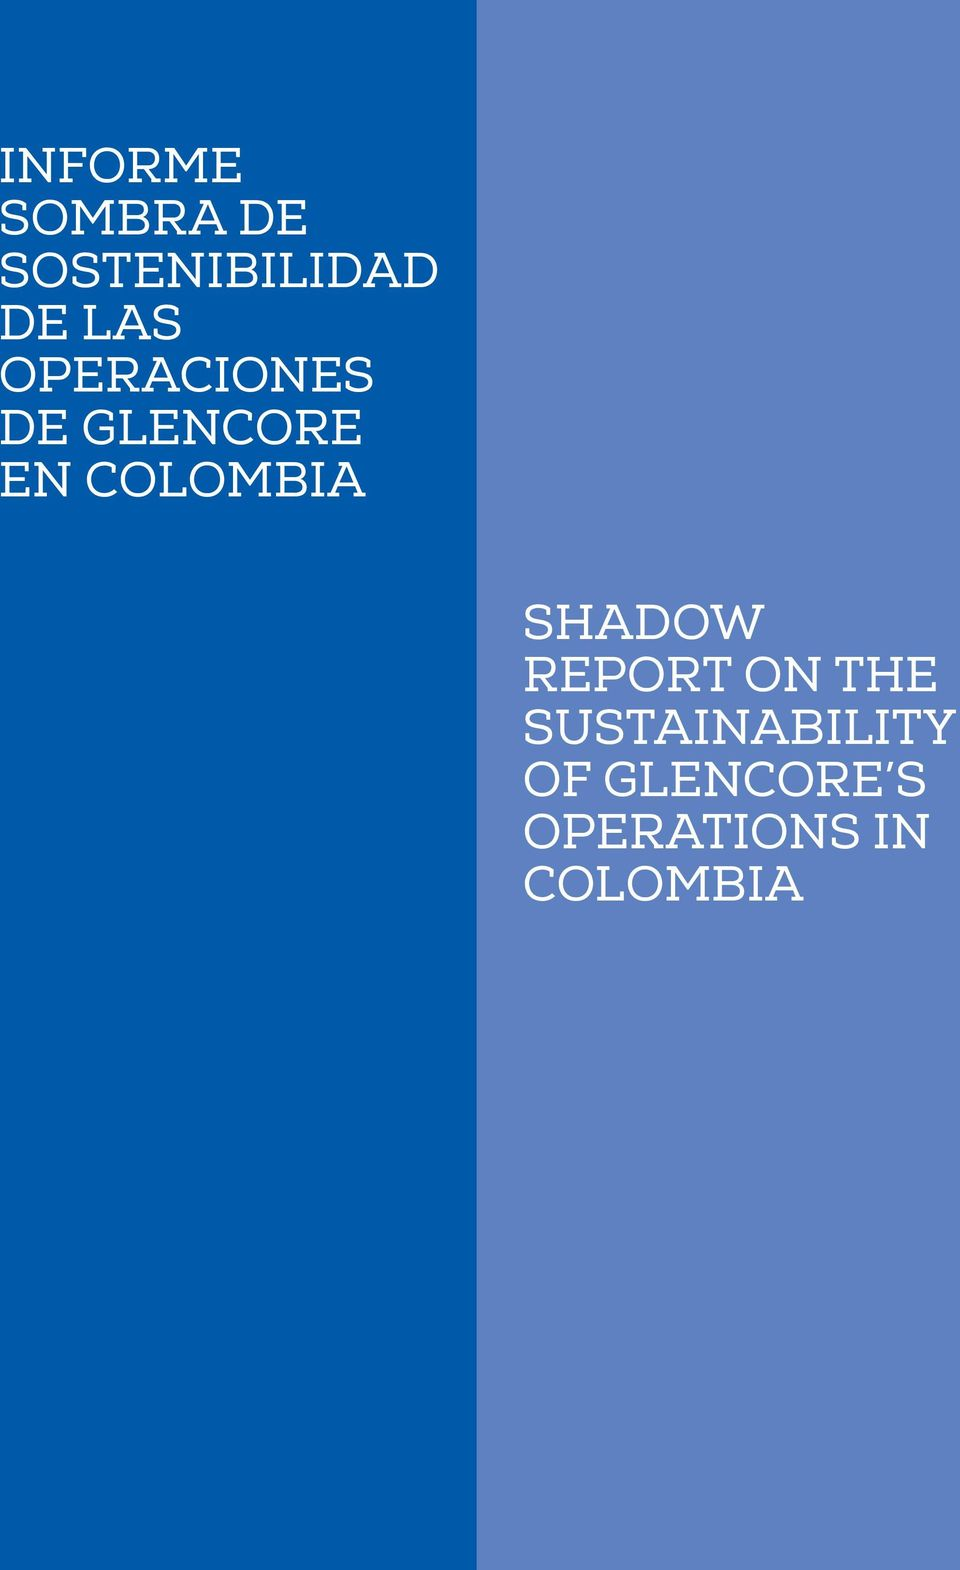 COLOMBIA SHADOW REPORT ON THE